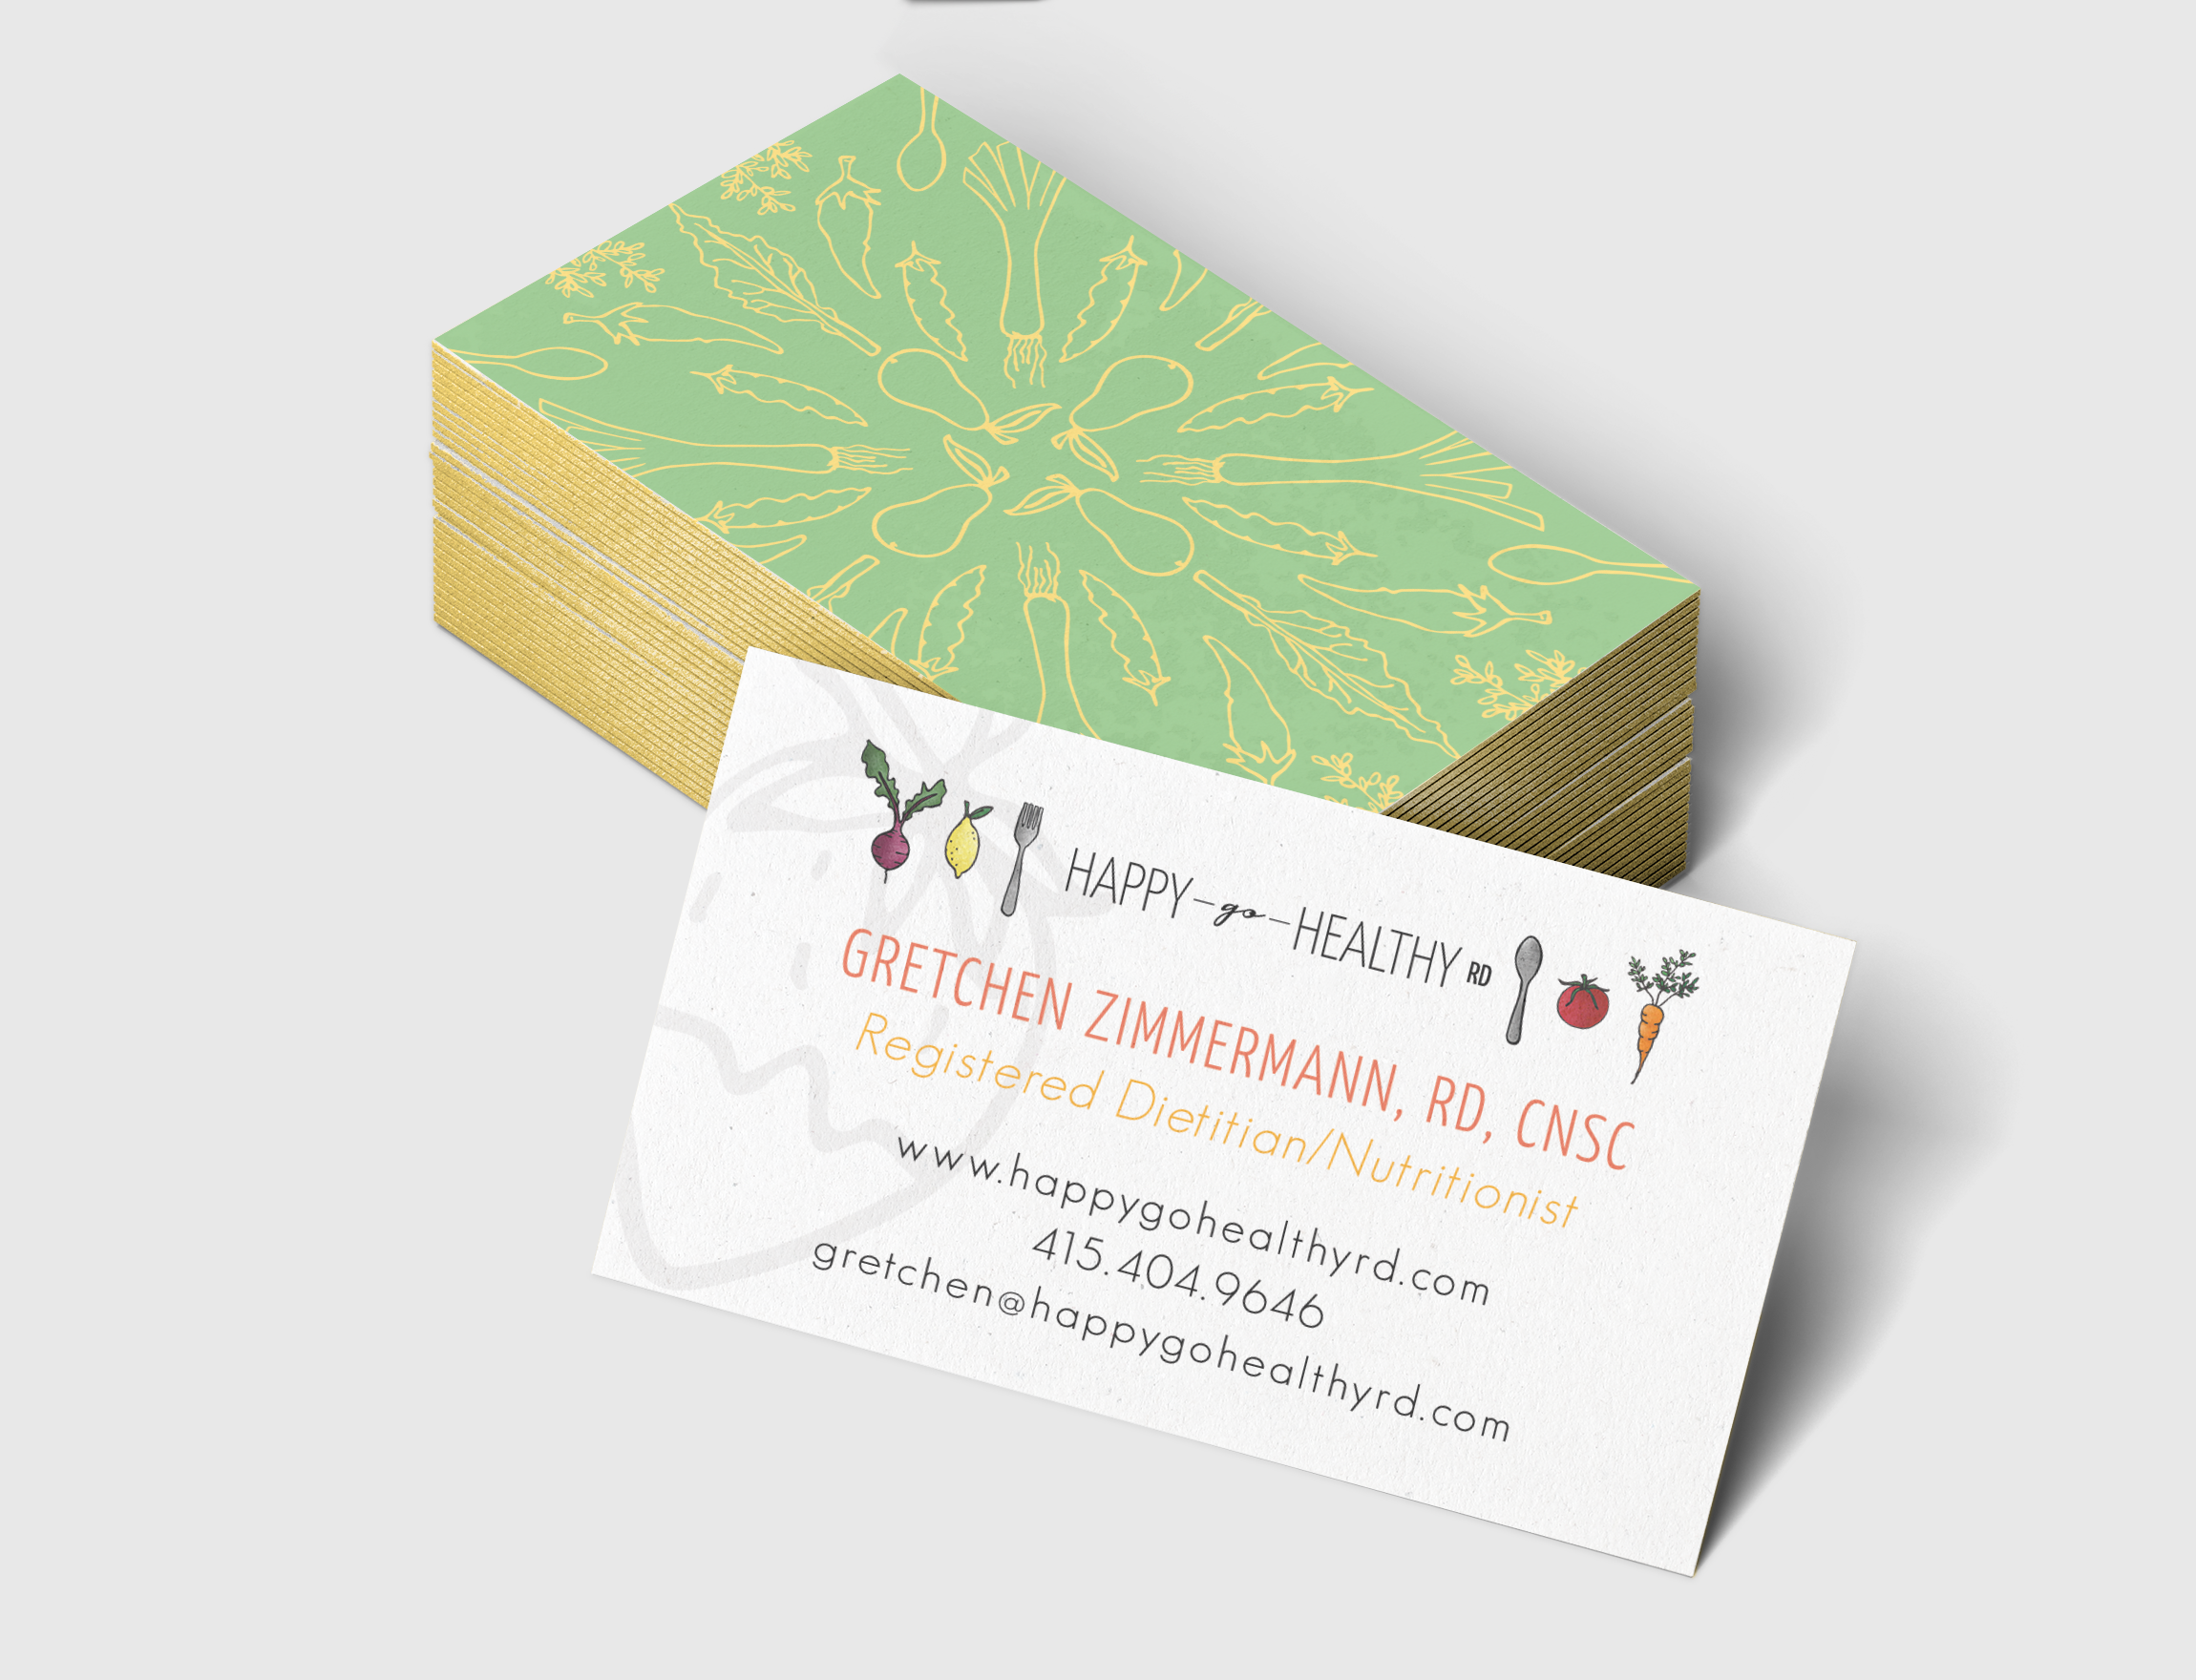 Bussiness Card Mockup green.png